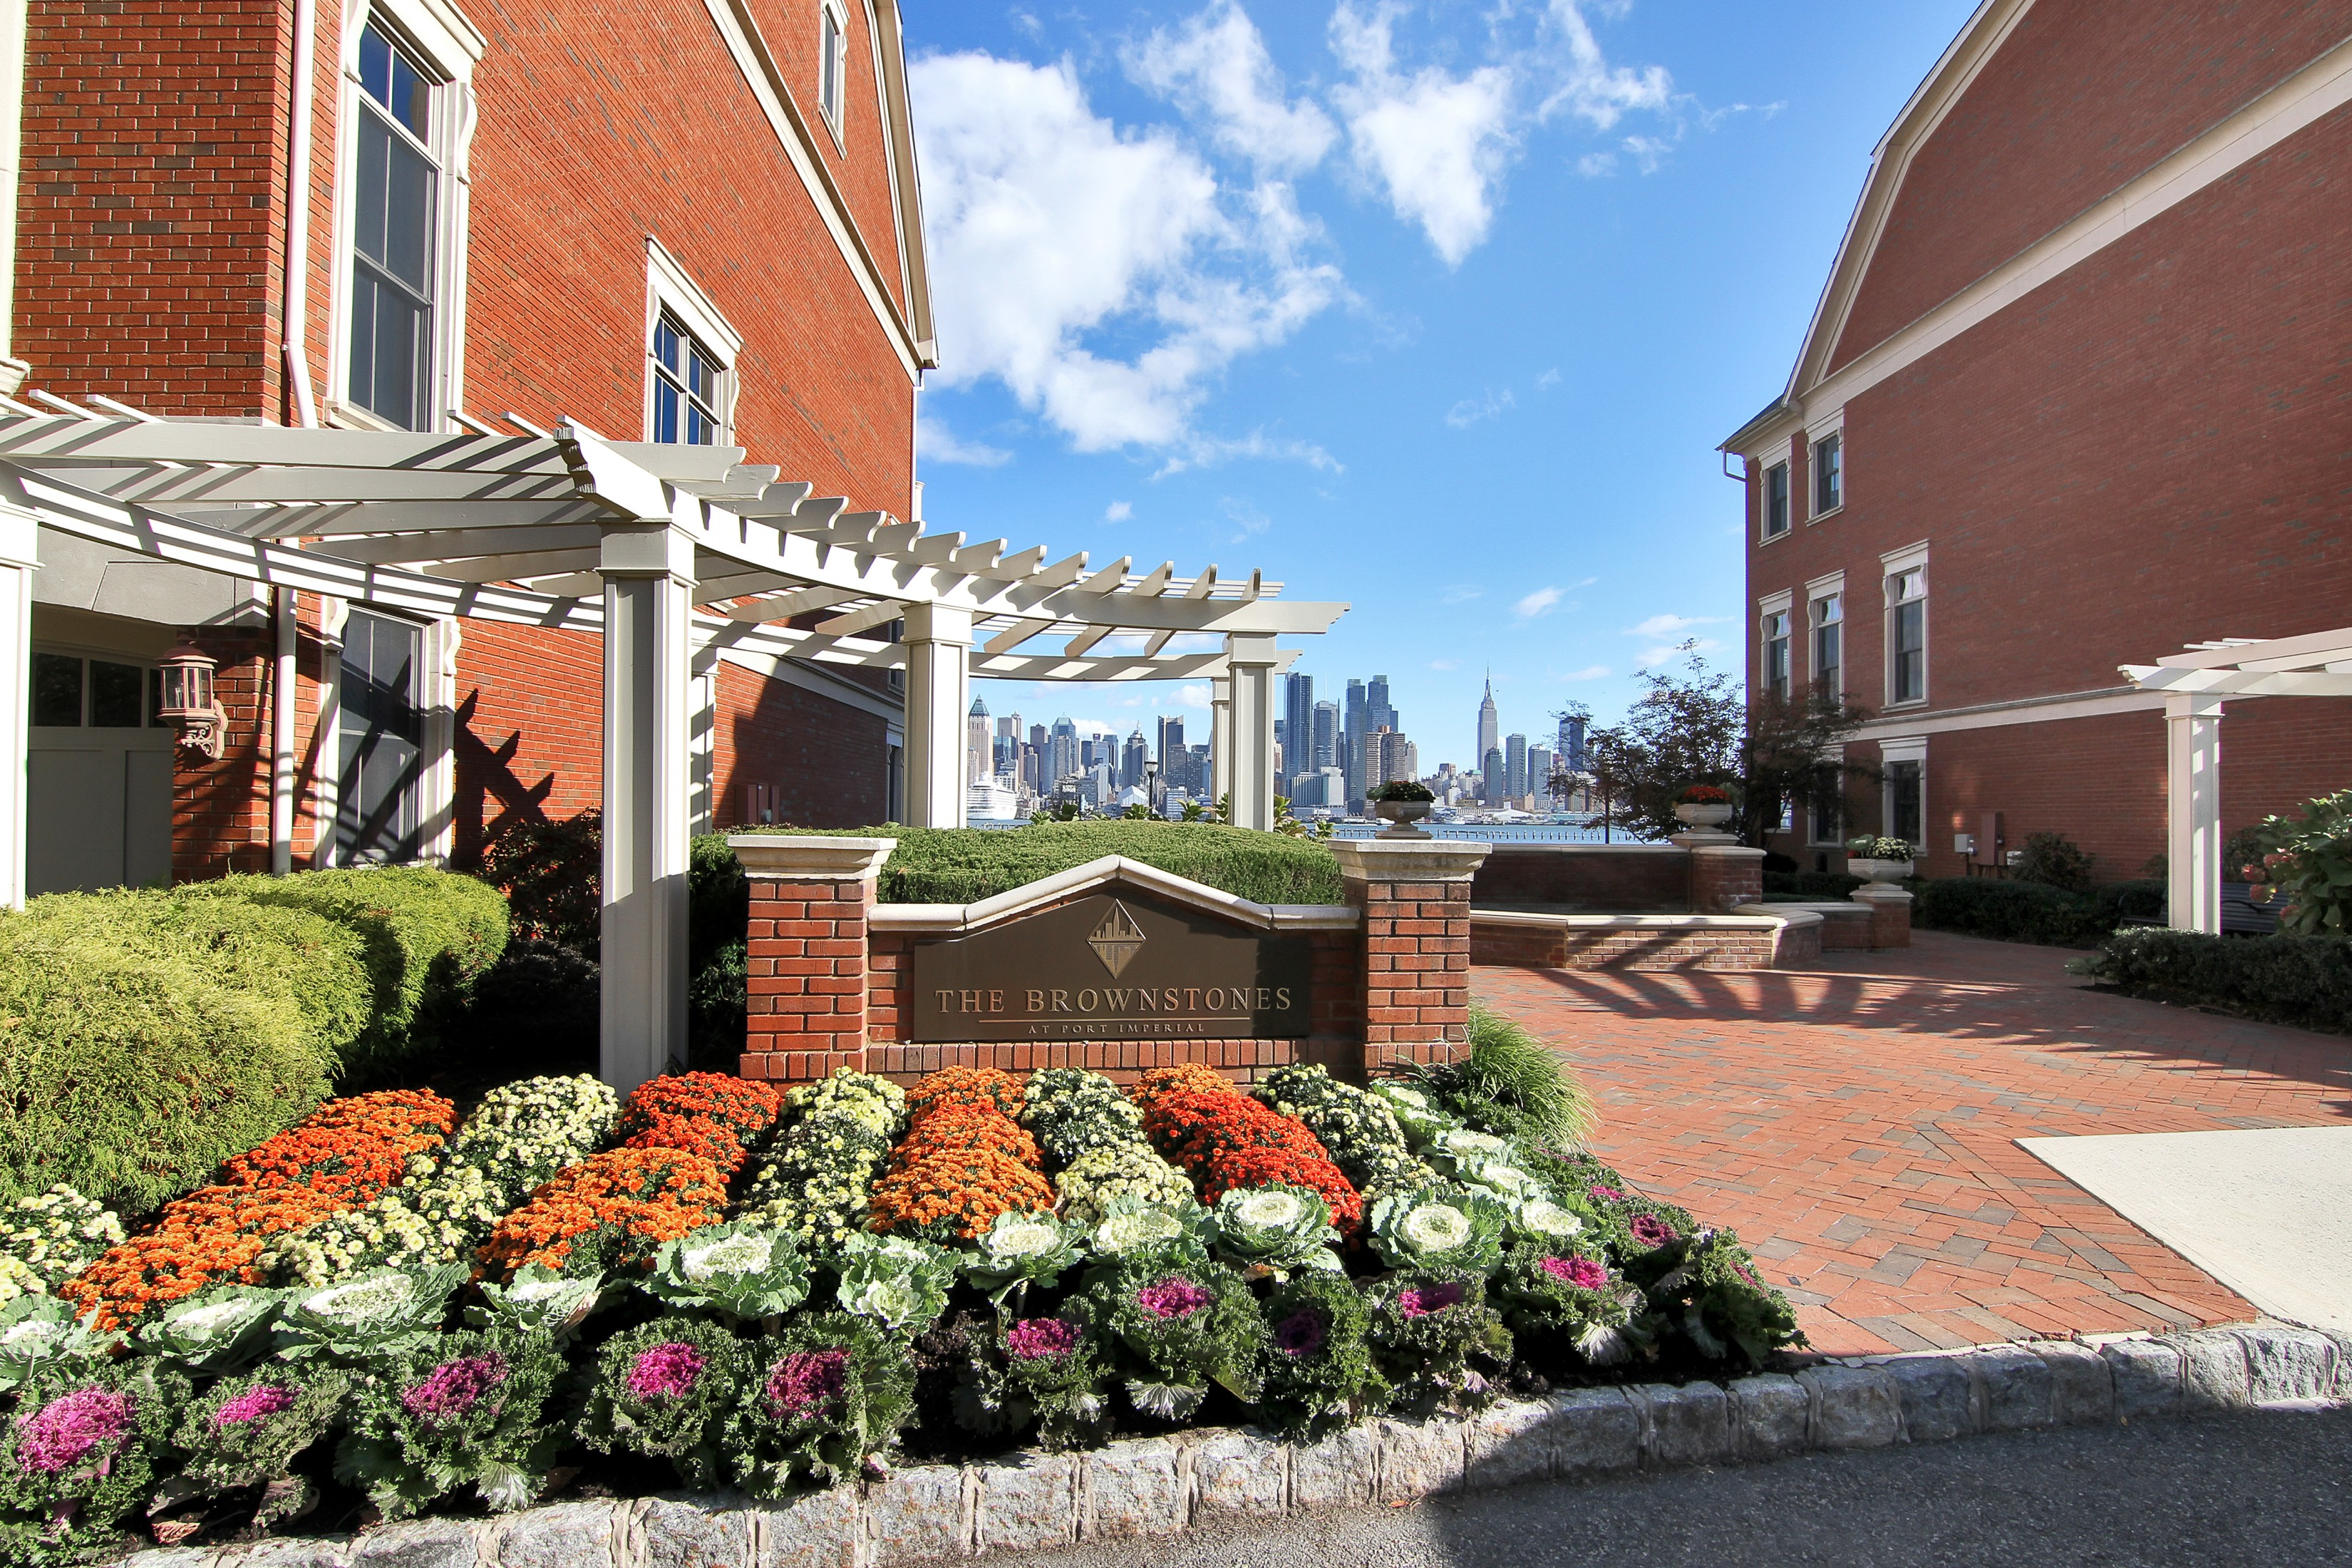 Townhouse for Sale at BrownStone at Port Imperial! 31 Regency Place #31 Weehawken, New Jersey, 07086 United States